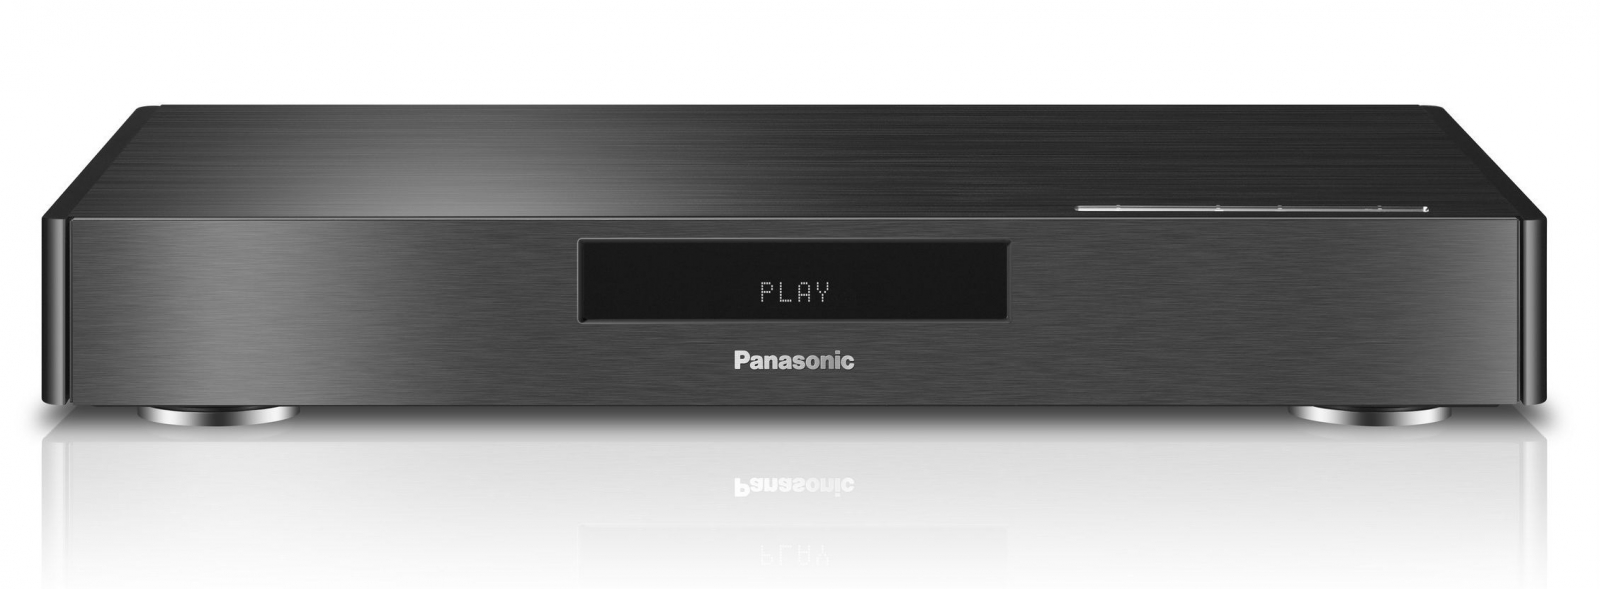 Panasonic 4K Blu-ray player unveiled